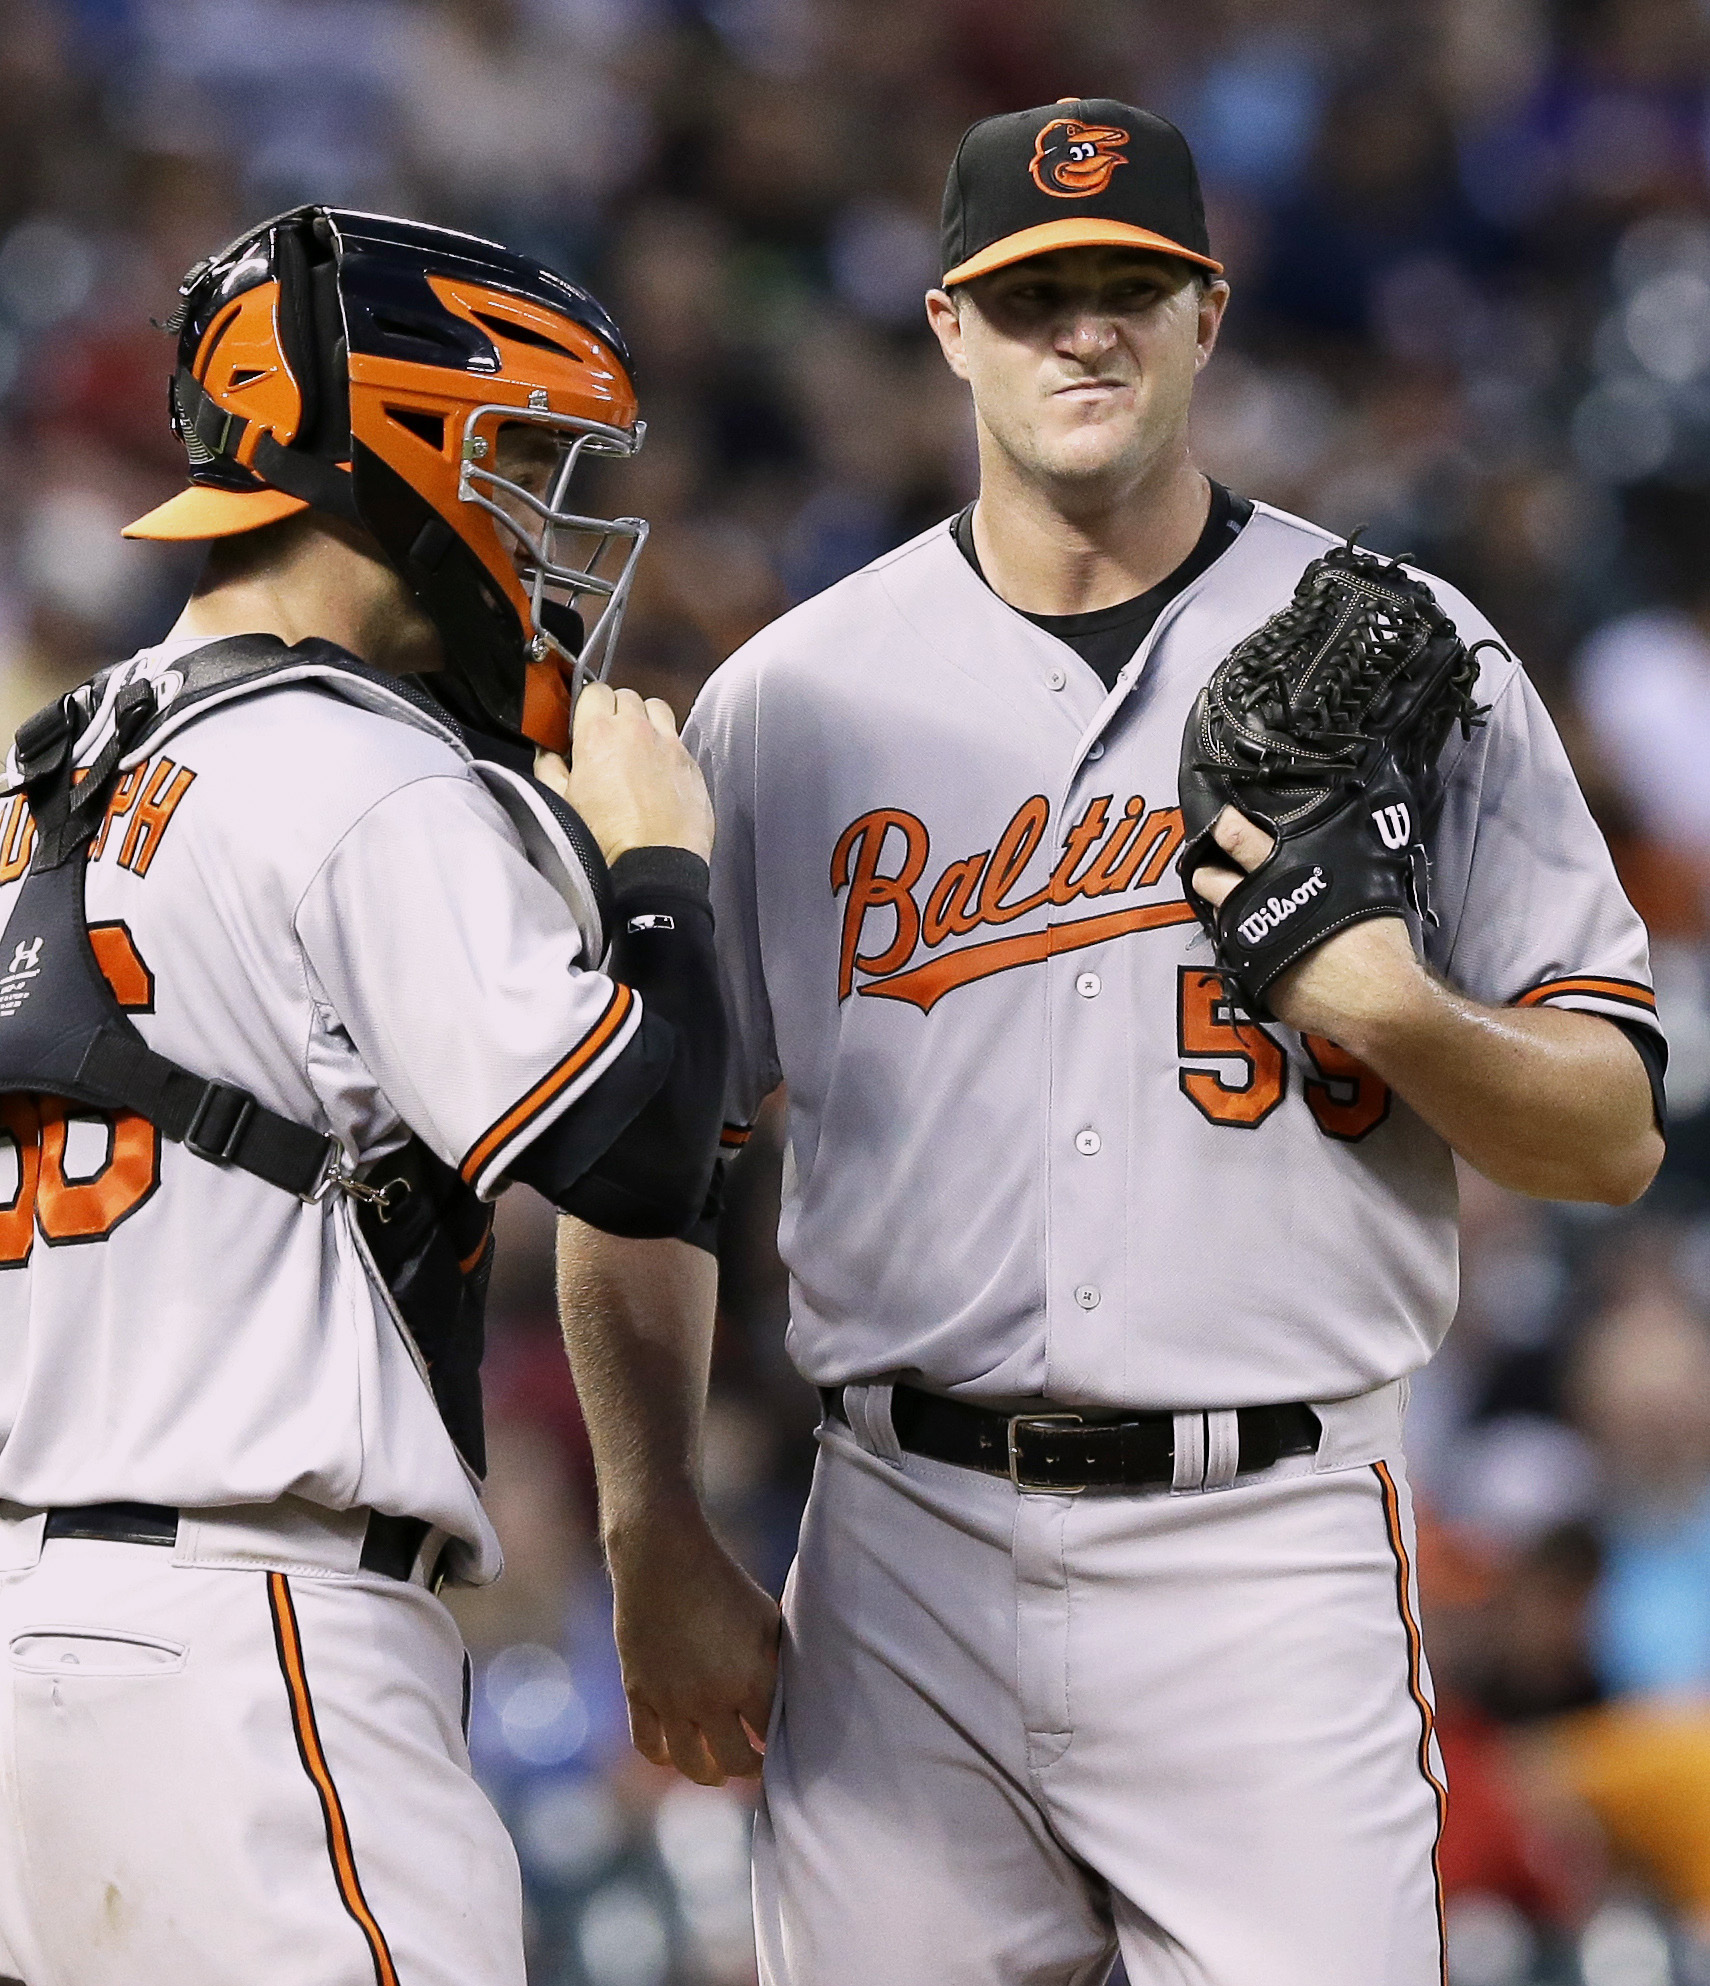 Baltimore Orioles starting pitcher Mike Wright, right, gets a visit to the mound from catcher Caleb Joseph after giving up a double to Houston Astros' Hank Conger in the third inning of a baseball game Tuesday, June 2, 2015, in Houston. (AP Photo/Pat Sull